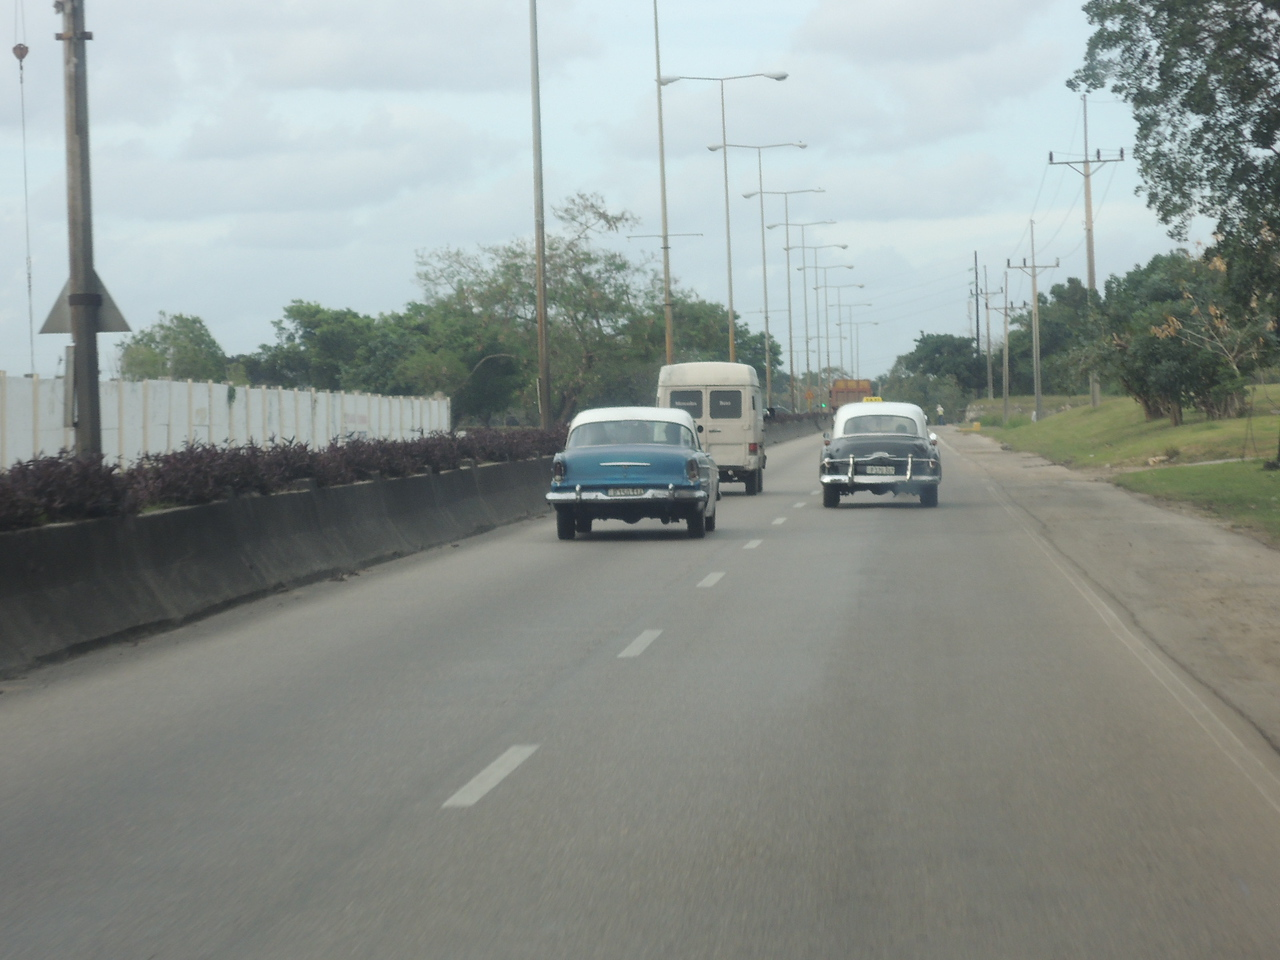 Looks like about a 53 or 54 Plymouth there on the left.